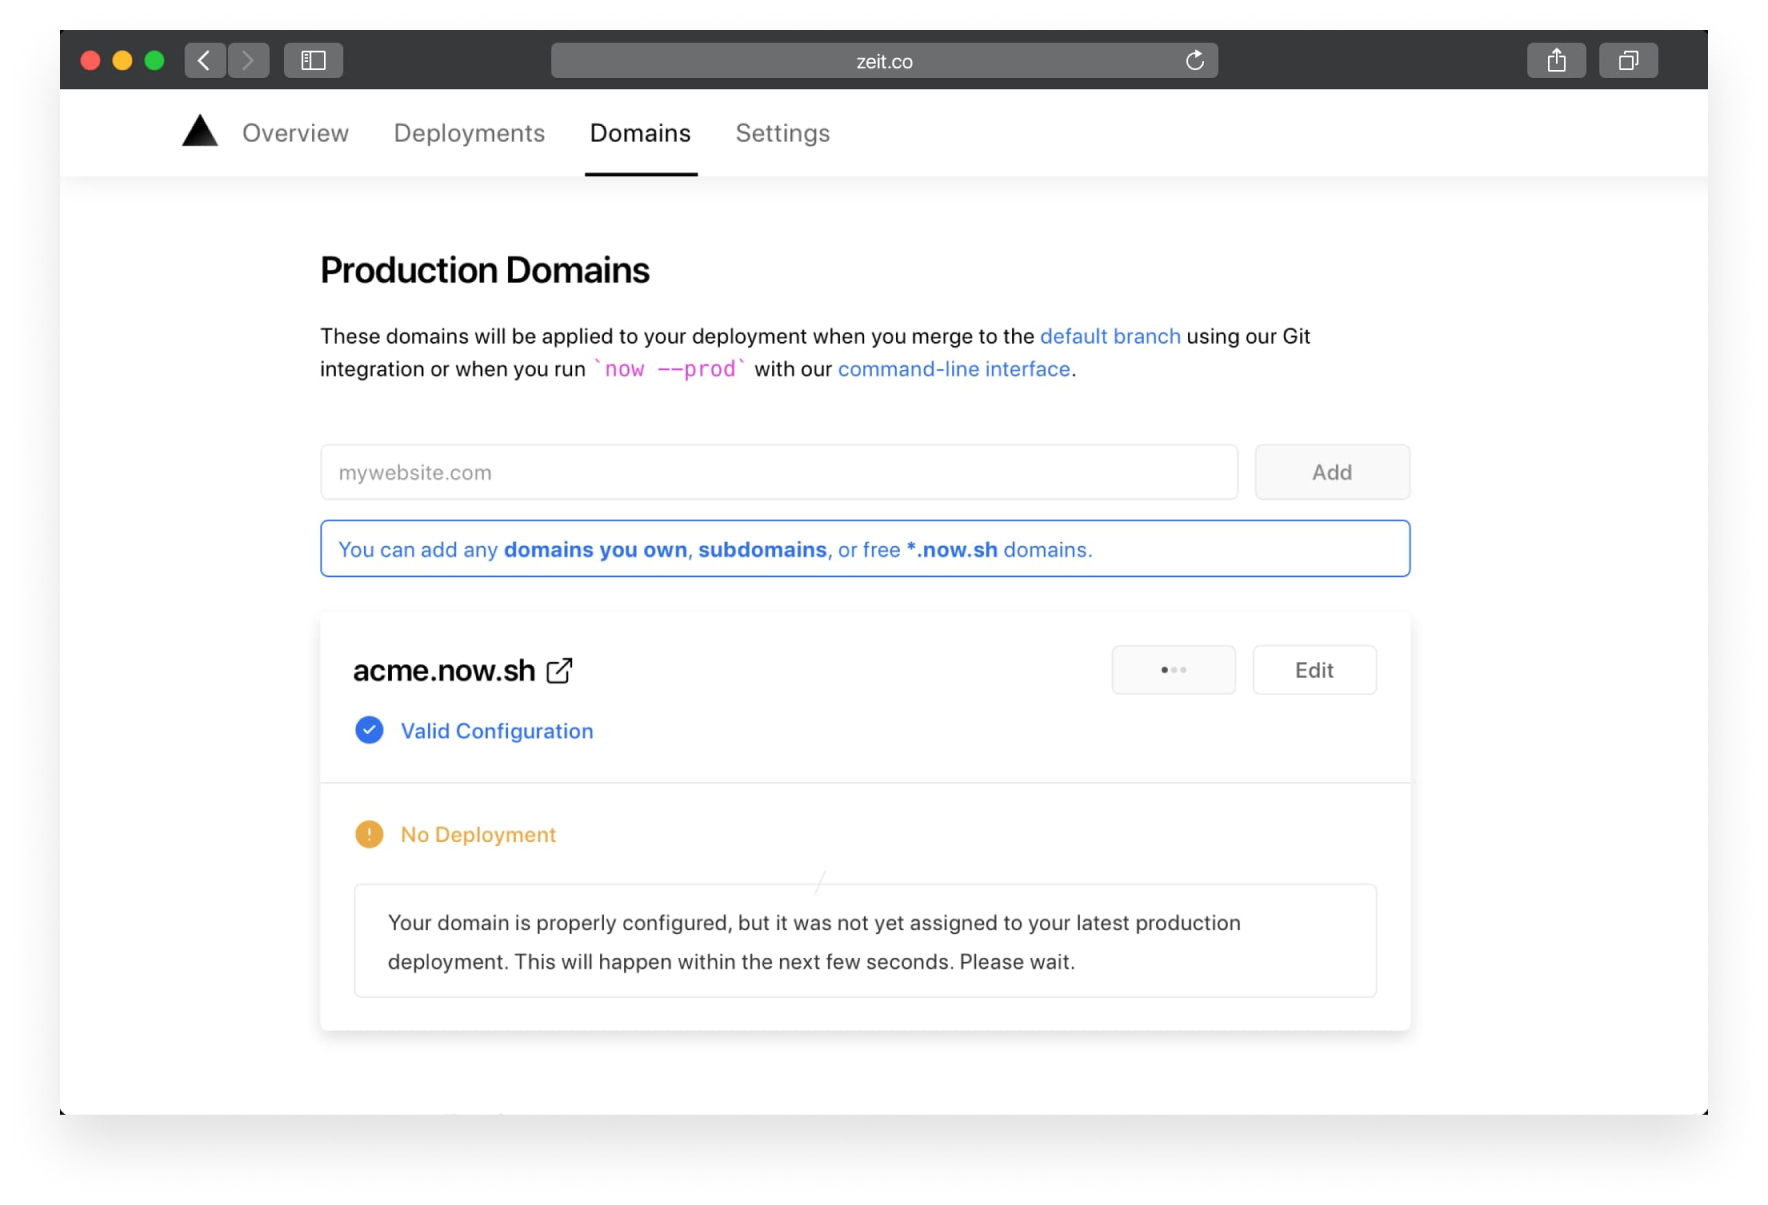 The interface guides you in setting up production domains for your project.